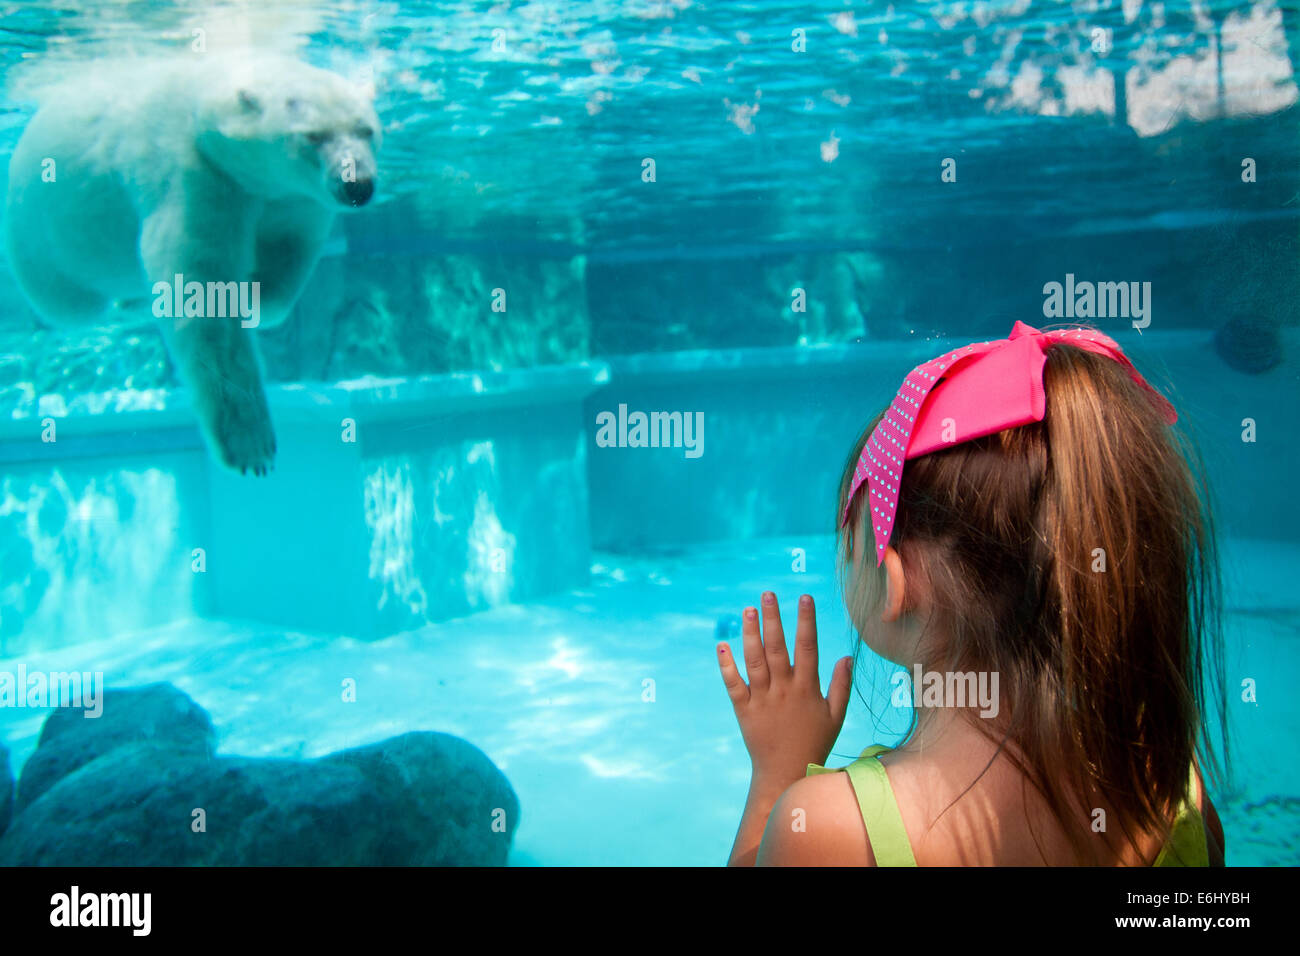 tdy shy makes mor com canonical japan featured zoo vid today debut watch video watches desktop in polar cub bear